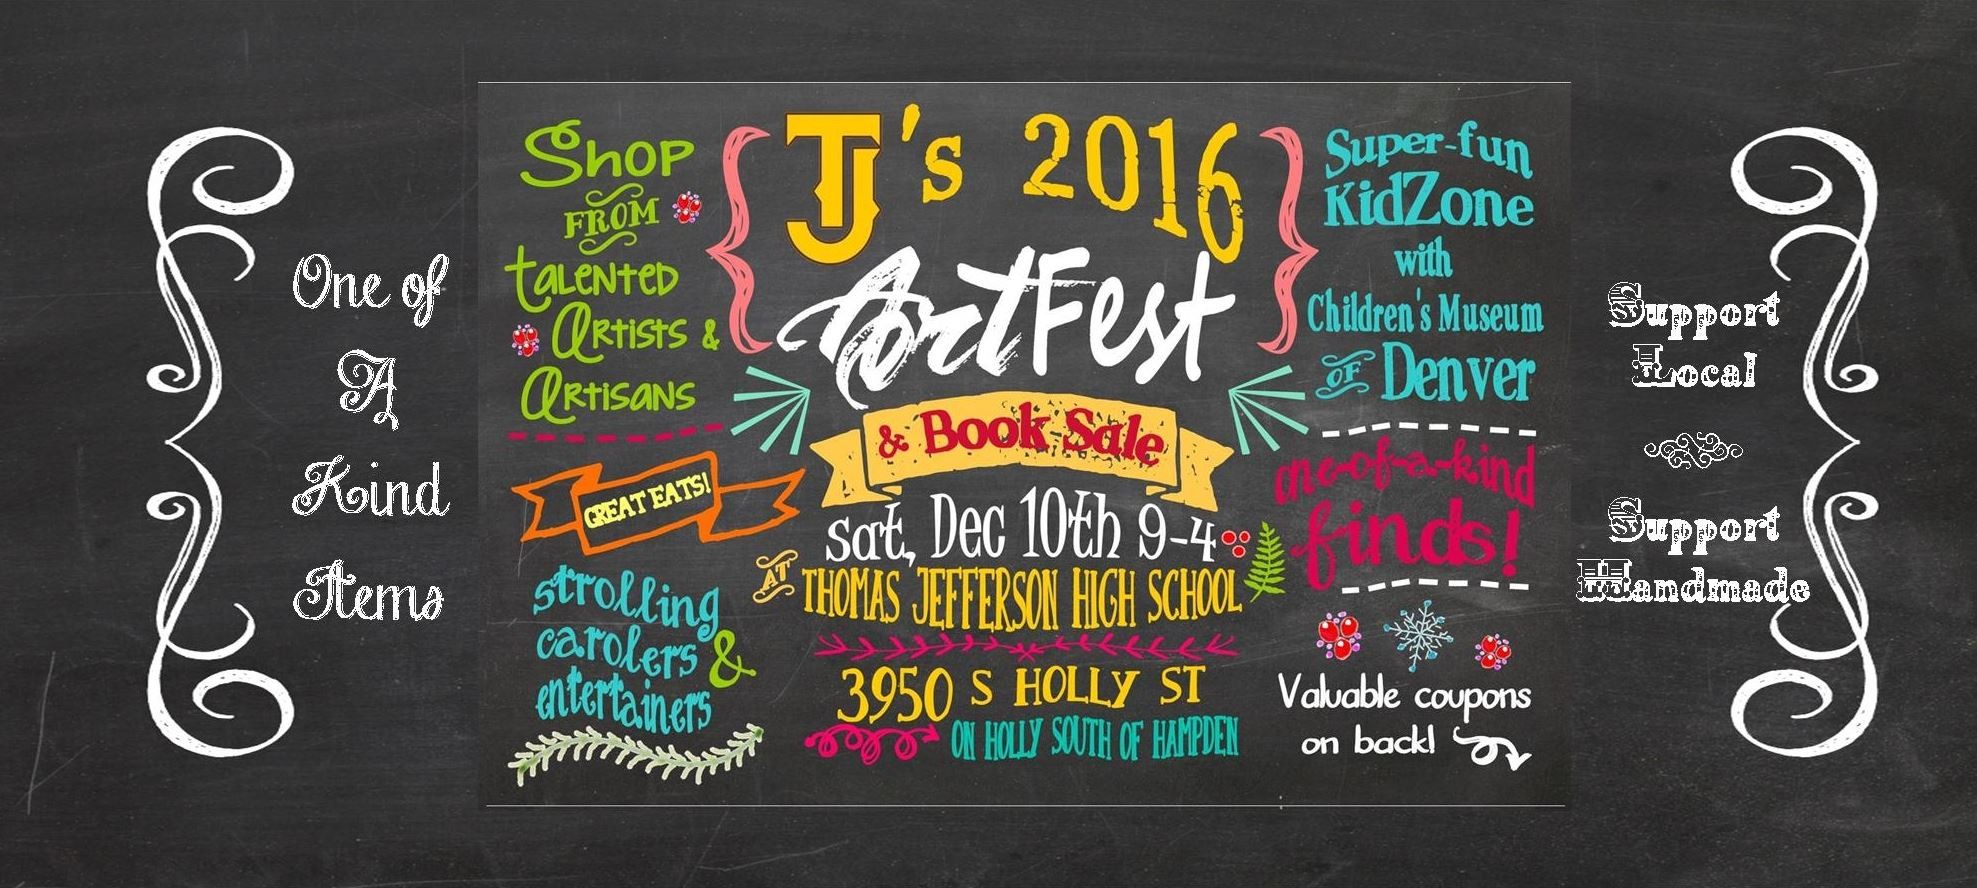 click flyer above for the ArtFest FB page!!